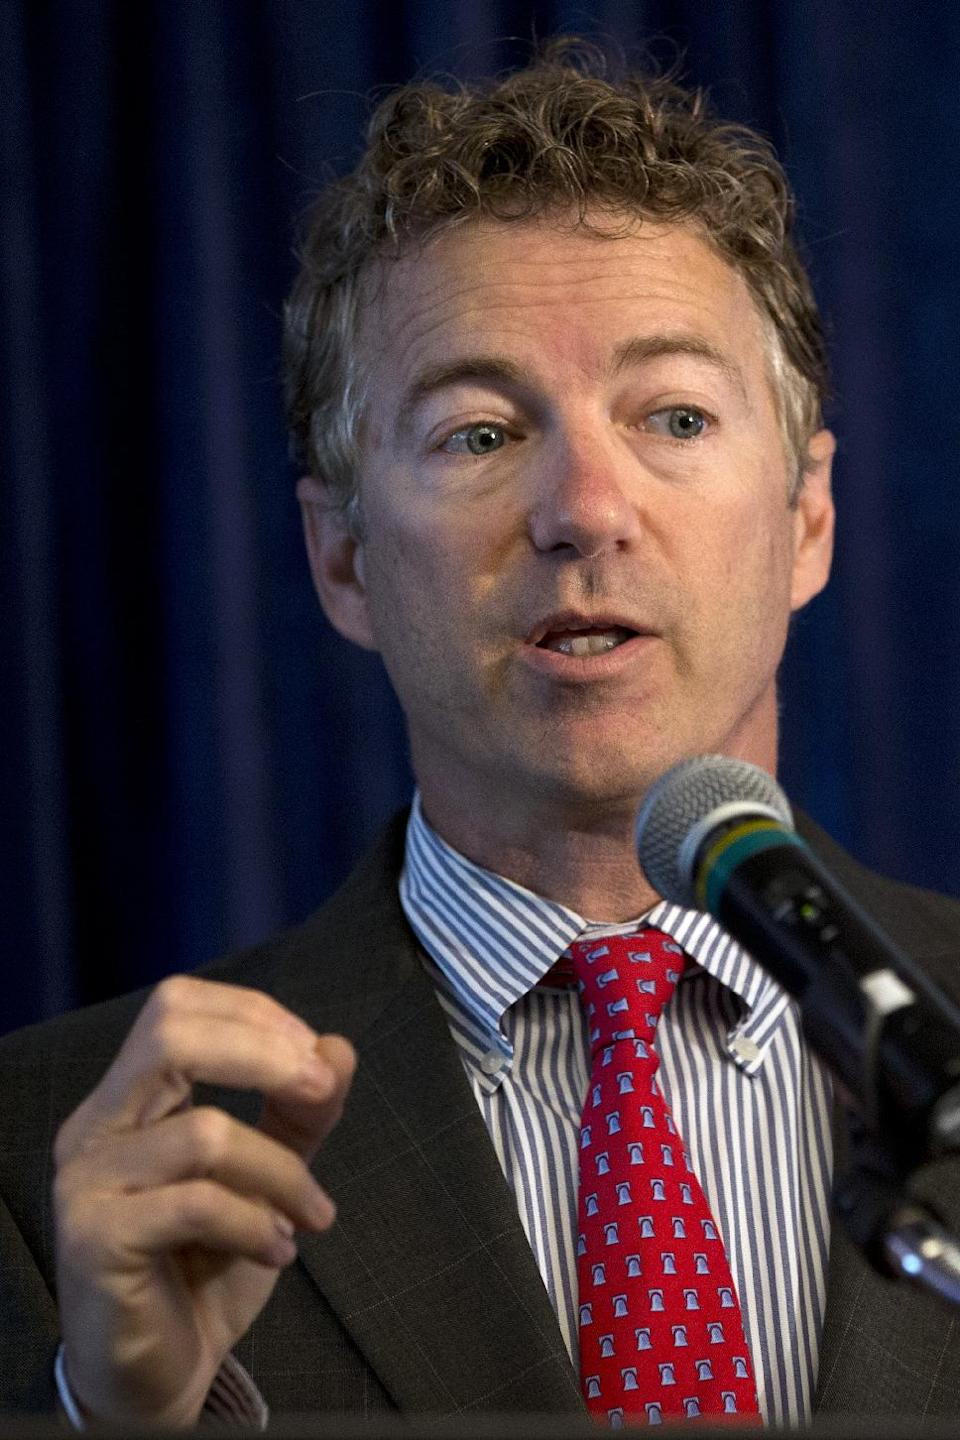 Sen. Rand Paul, R-Ky. speaks at a forum on immigration organized by the Latino Partnership for Conservative Principles and the National Hispanic Christian Leadership Conference, Wednesday, June 12, 2013, at the Hyatt Regency Hotel in Washington. (AP Photo/Jacquelyn Martin)